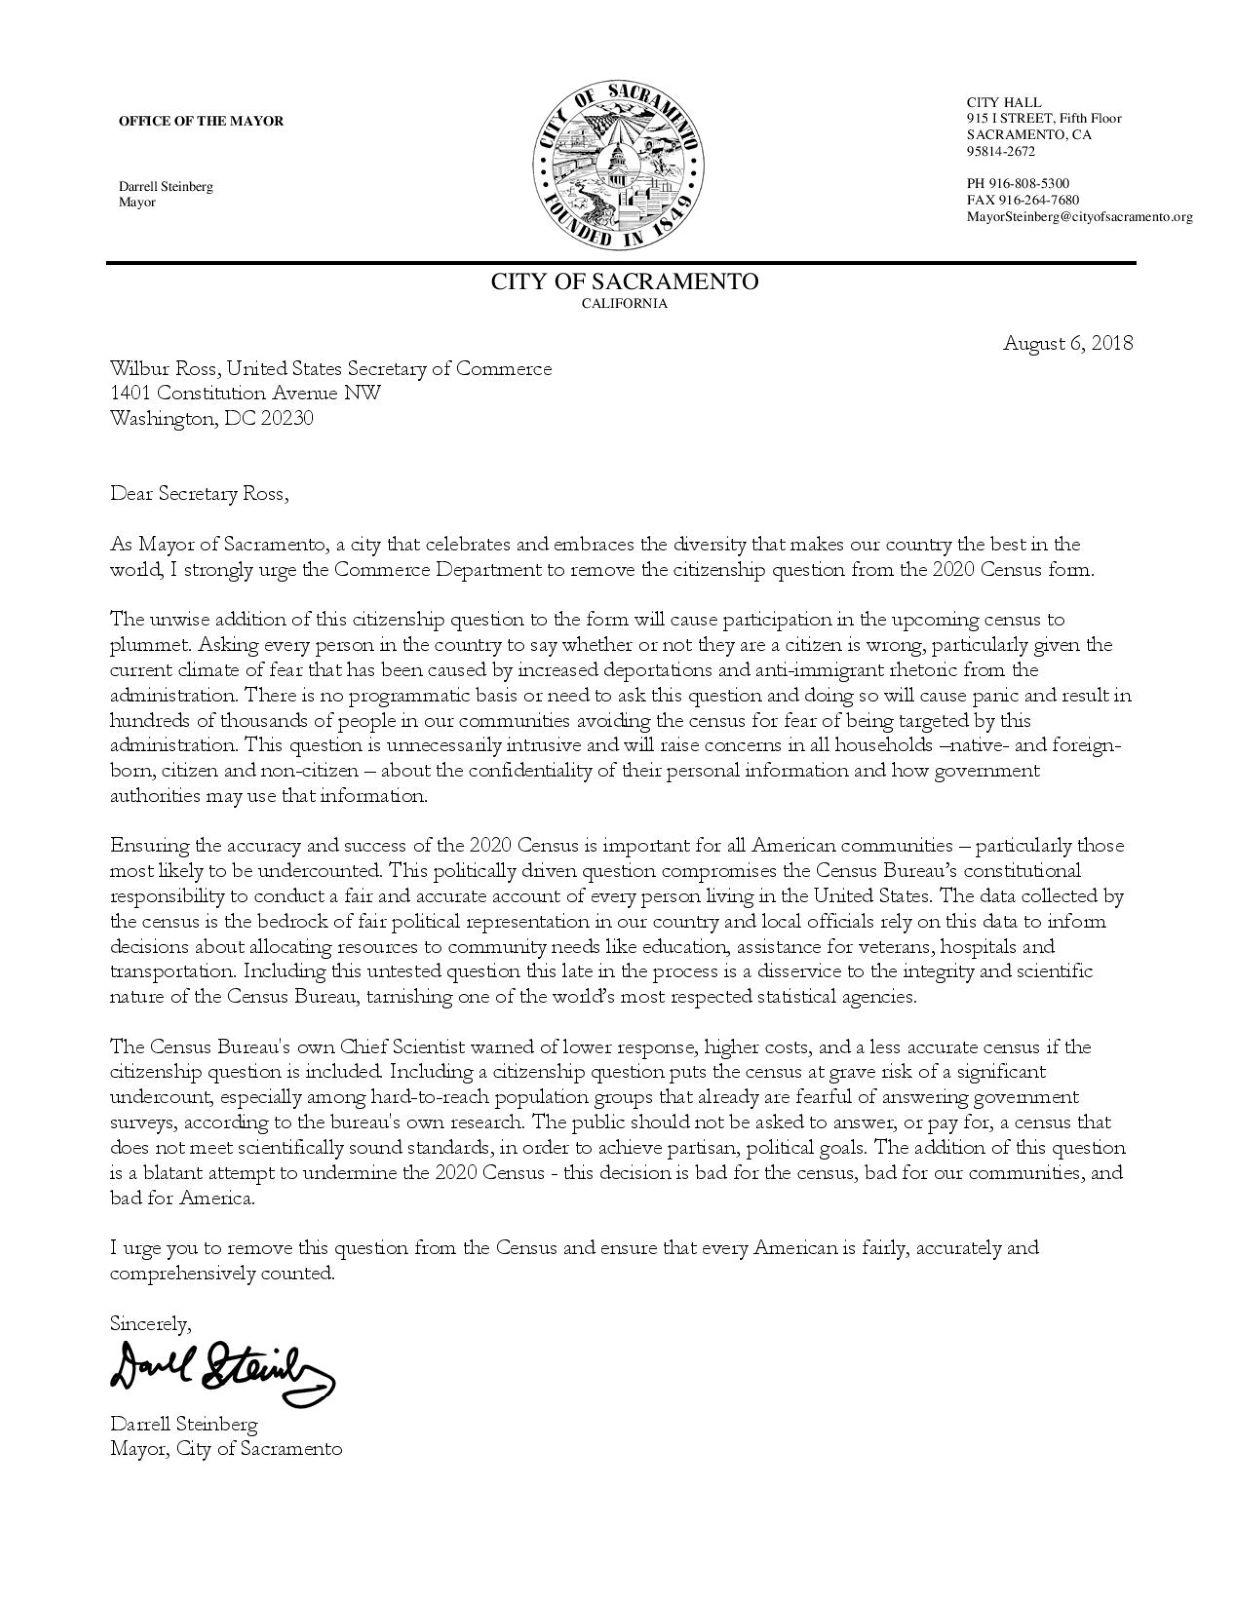 MDS Letter to Wilbur Ross re Citizenship Question-page-001 jpeg.jpg